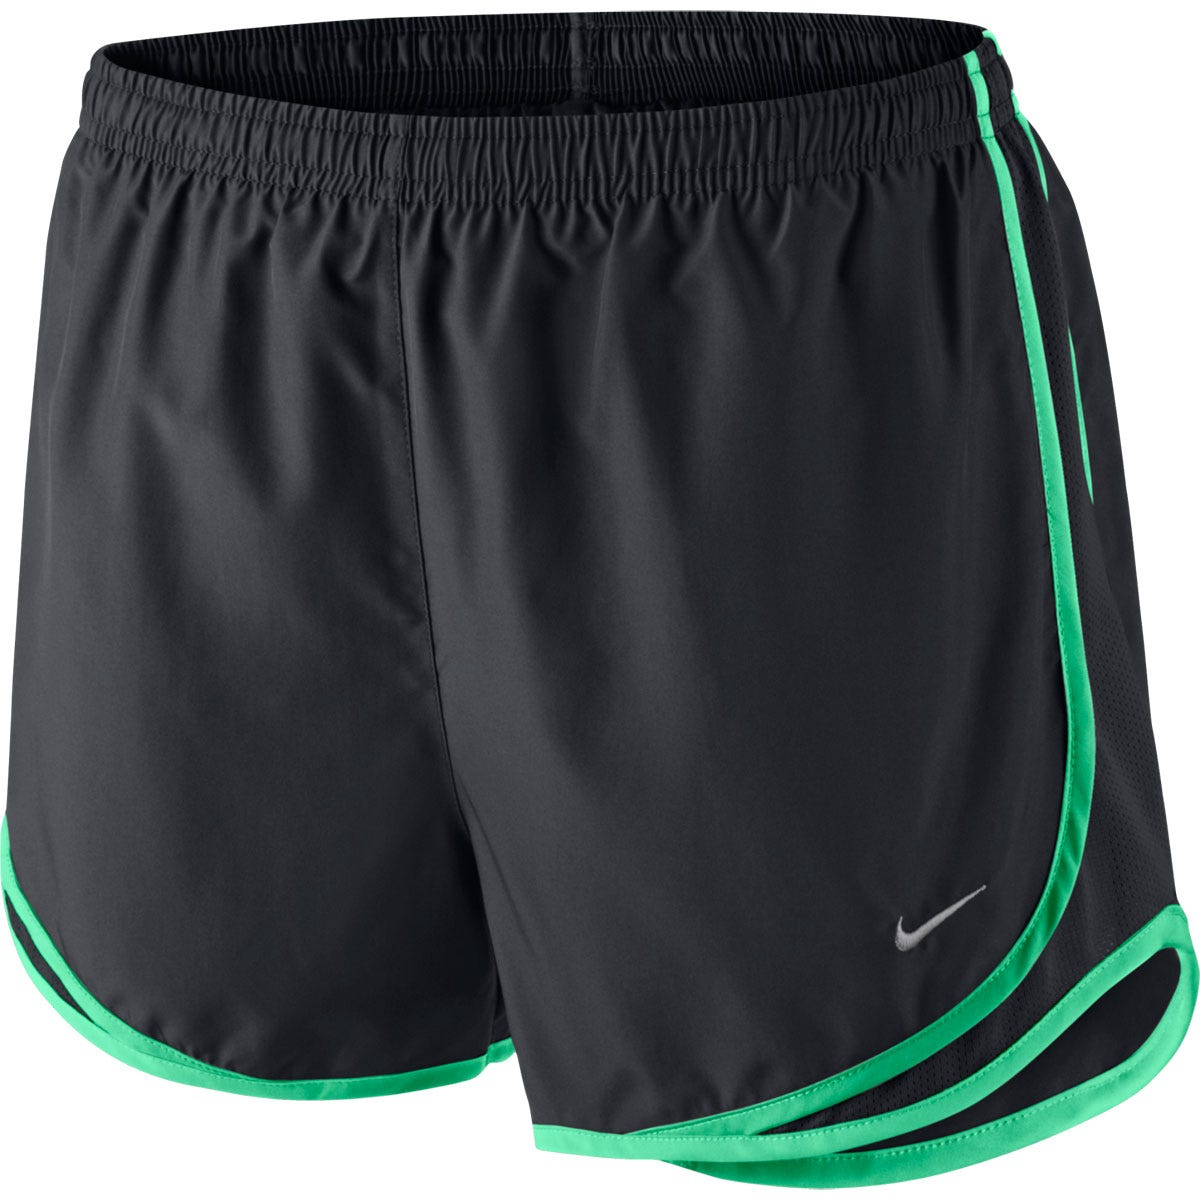 Nike Black/Green Elastic Waist Tempo Short - Womens Size Small